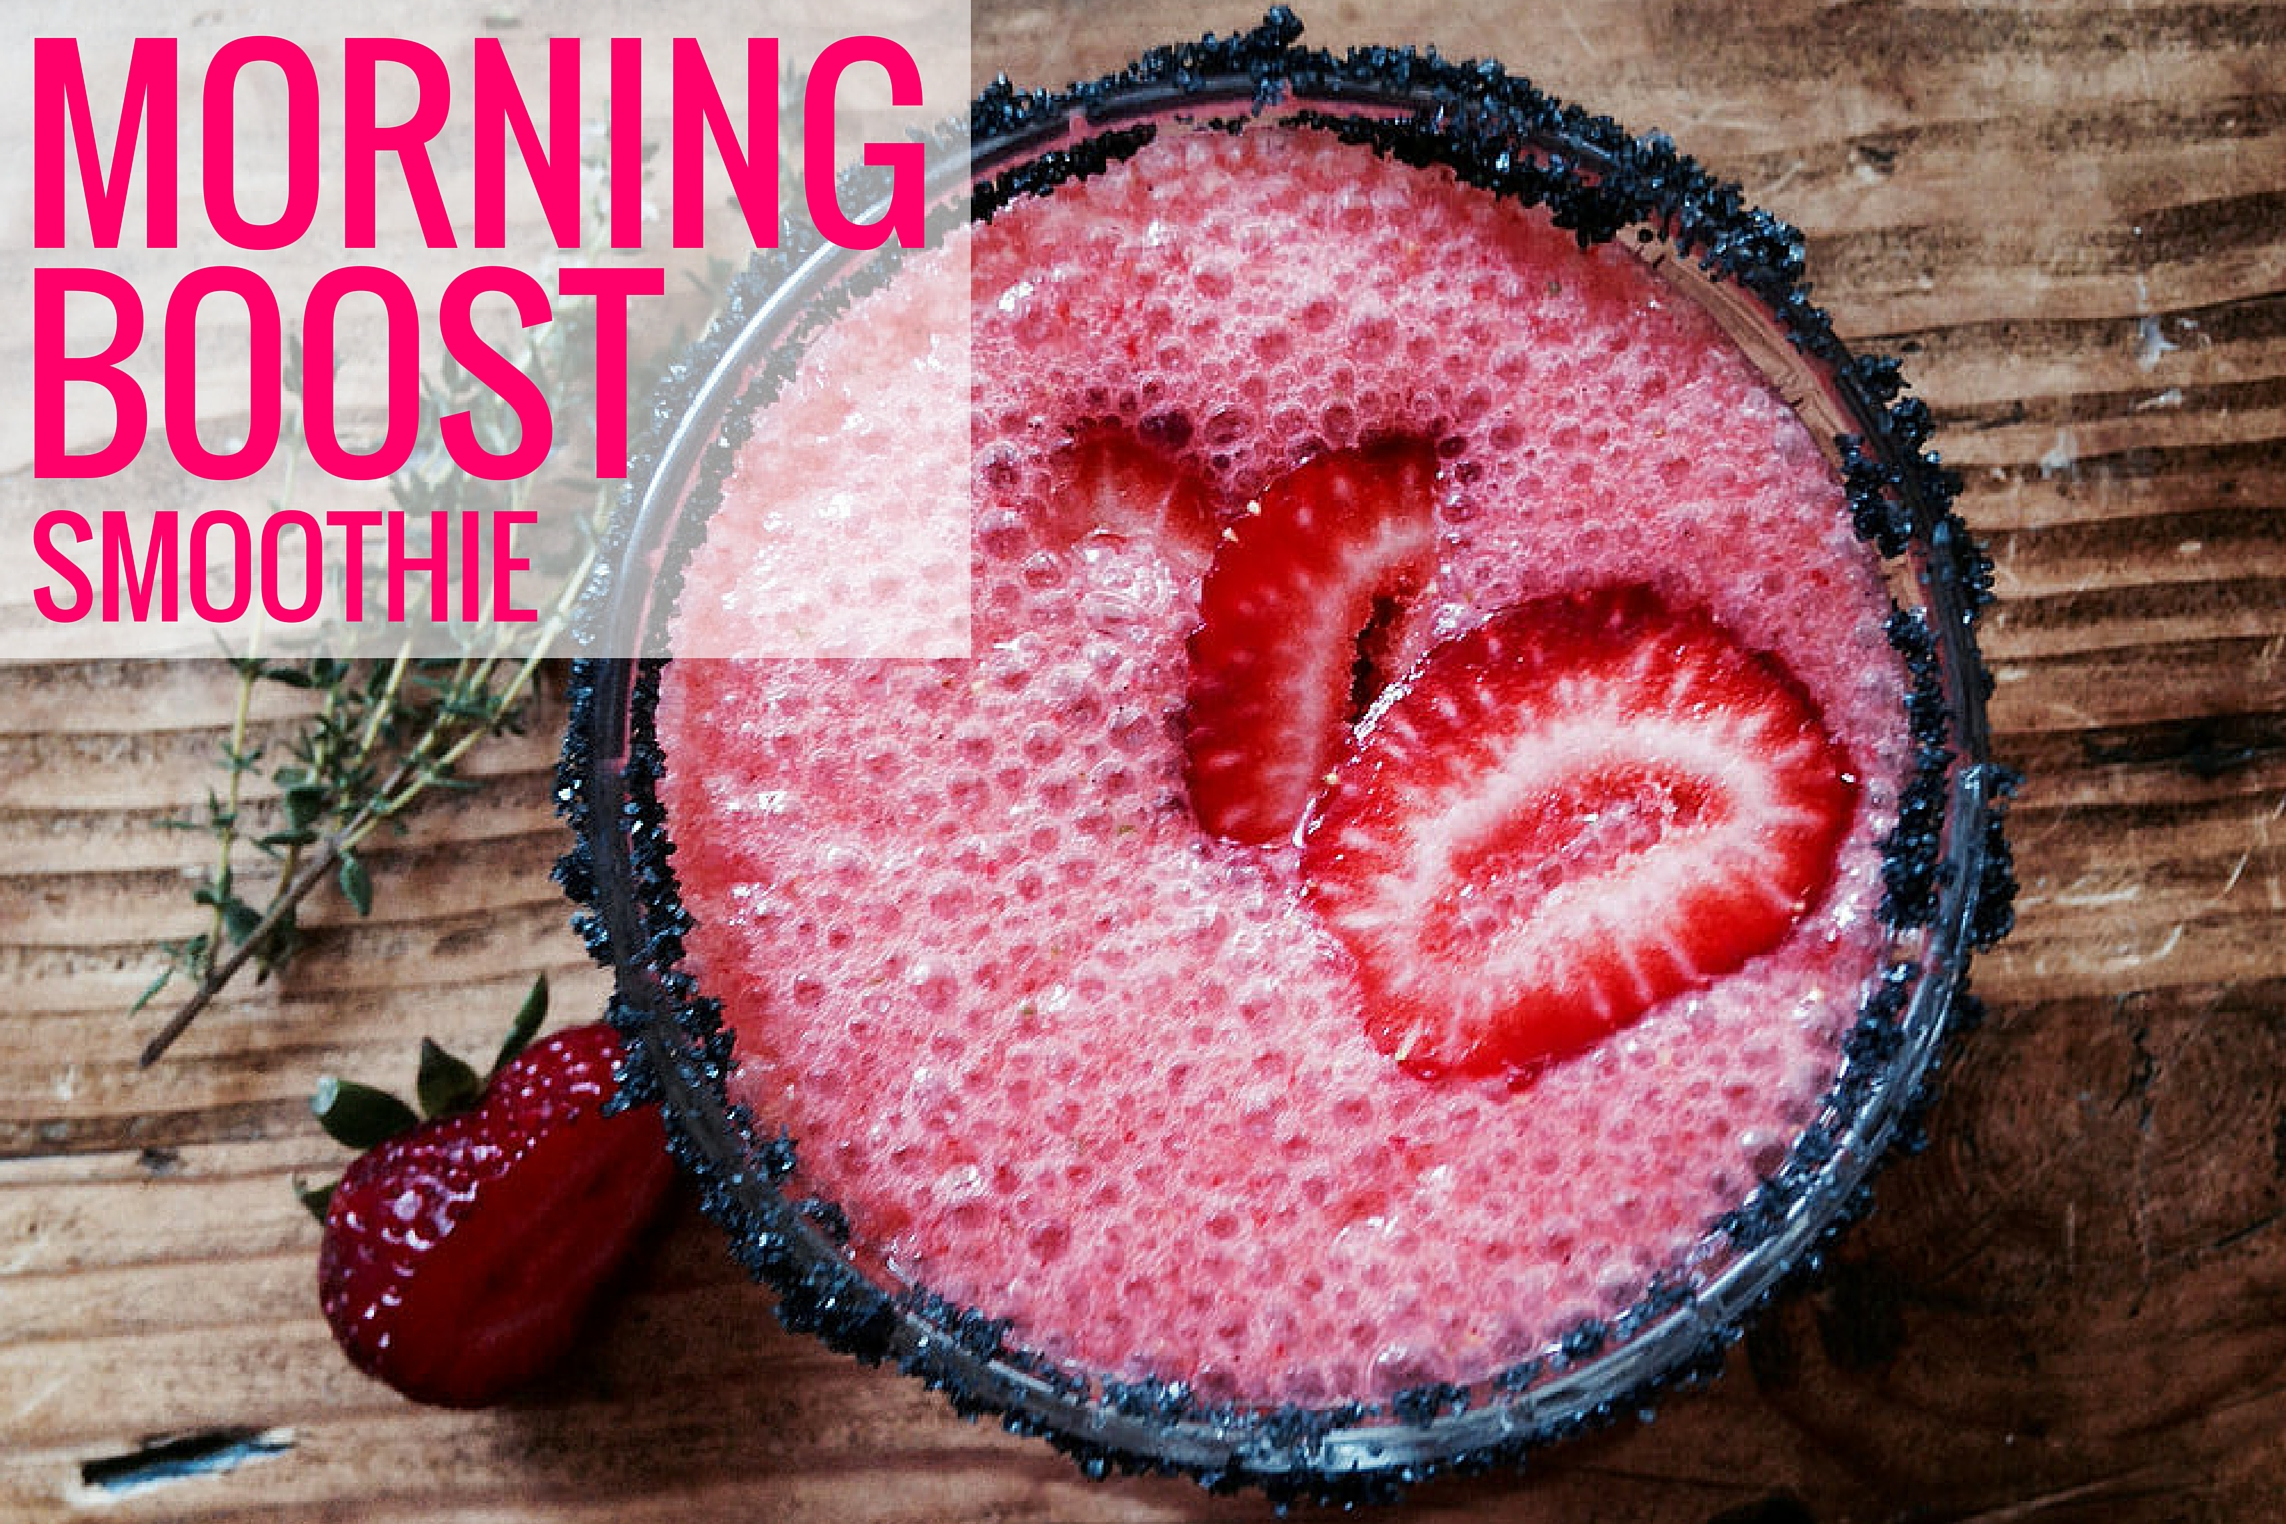 Morning Boost Smoothie Recipe